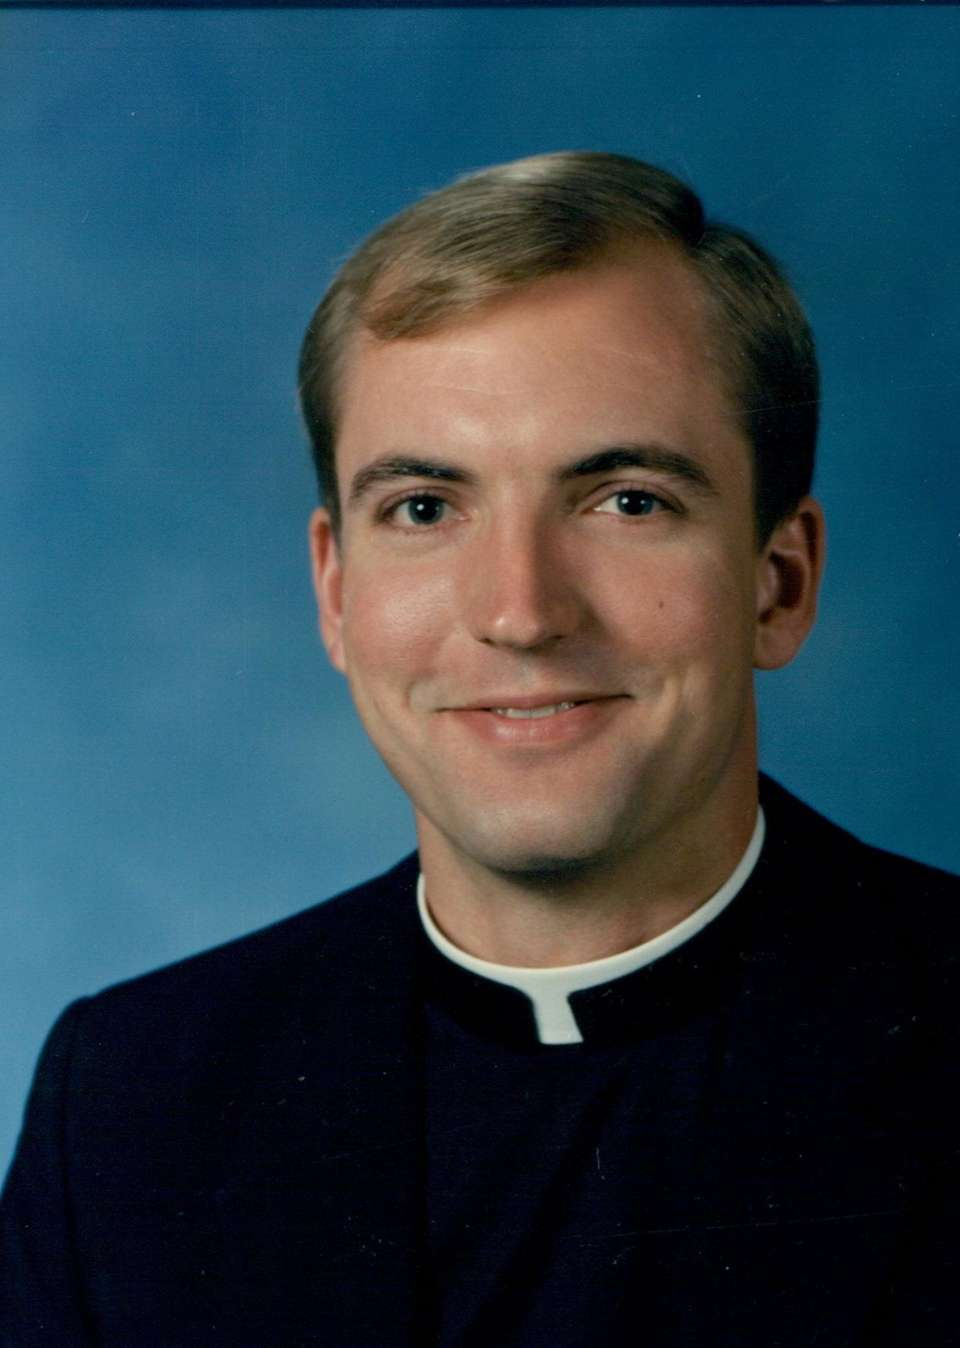 Rev. John O. Barres ordination picture 1989.